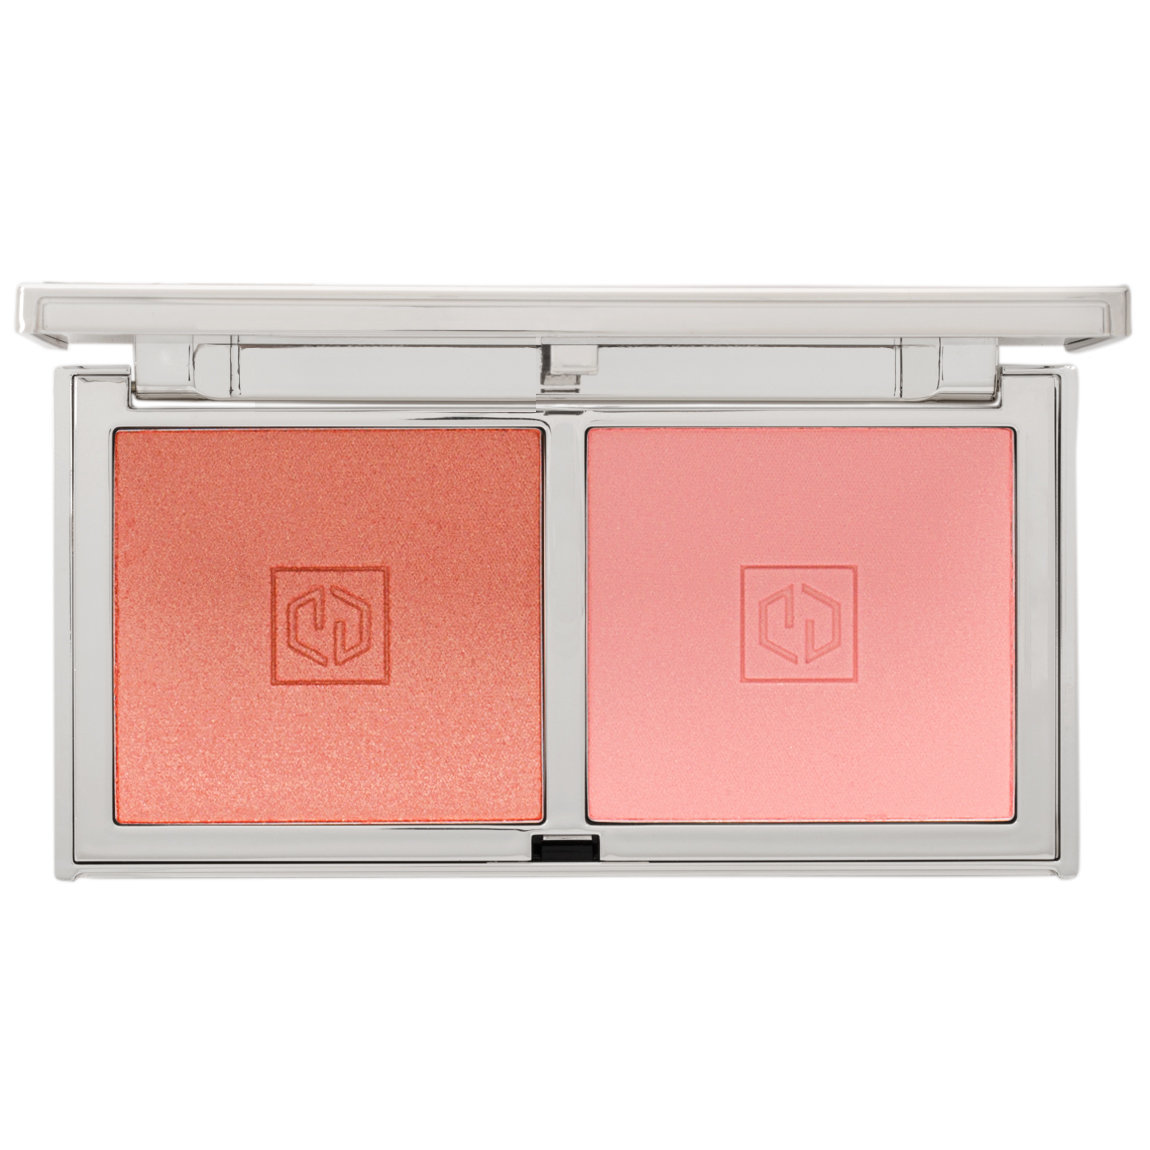 Jouer Cosmetics Blush Bouquet Rose Gold alternative view 1 - product swatch.